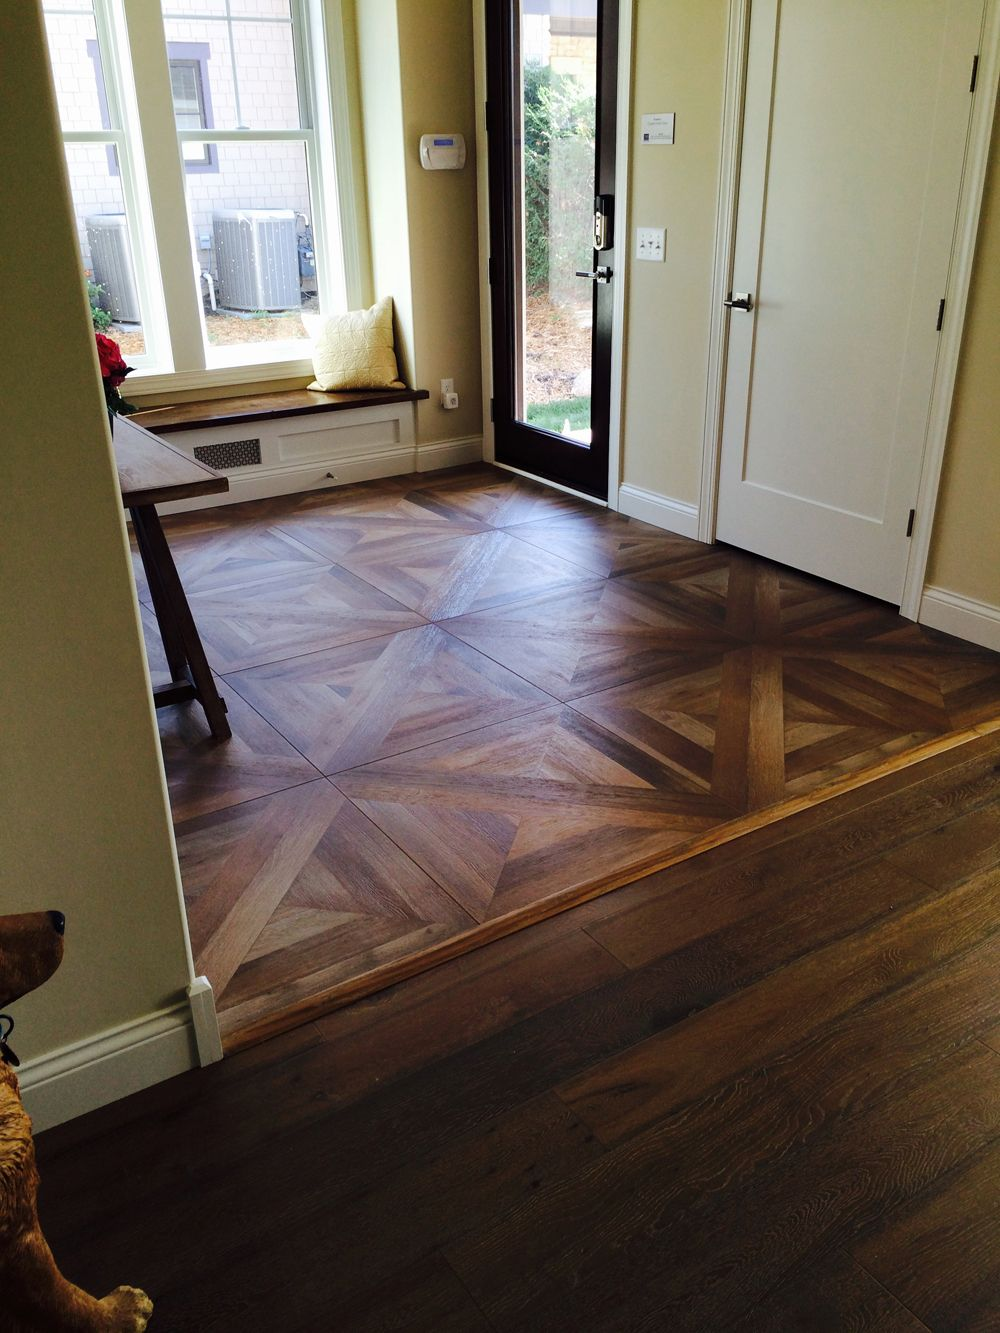 Wood tile floor pattern 집, 인테리어